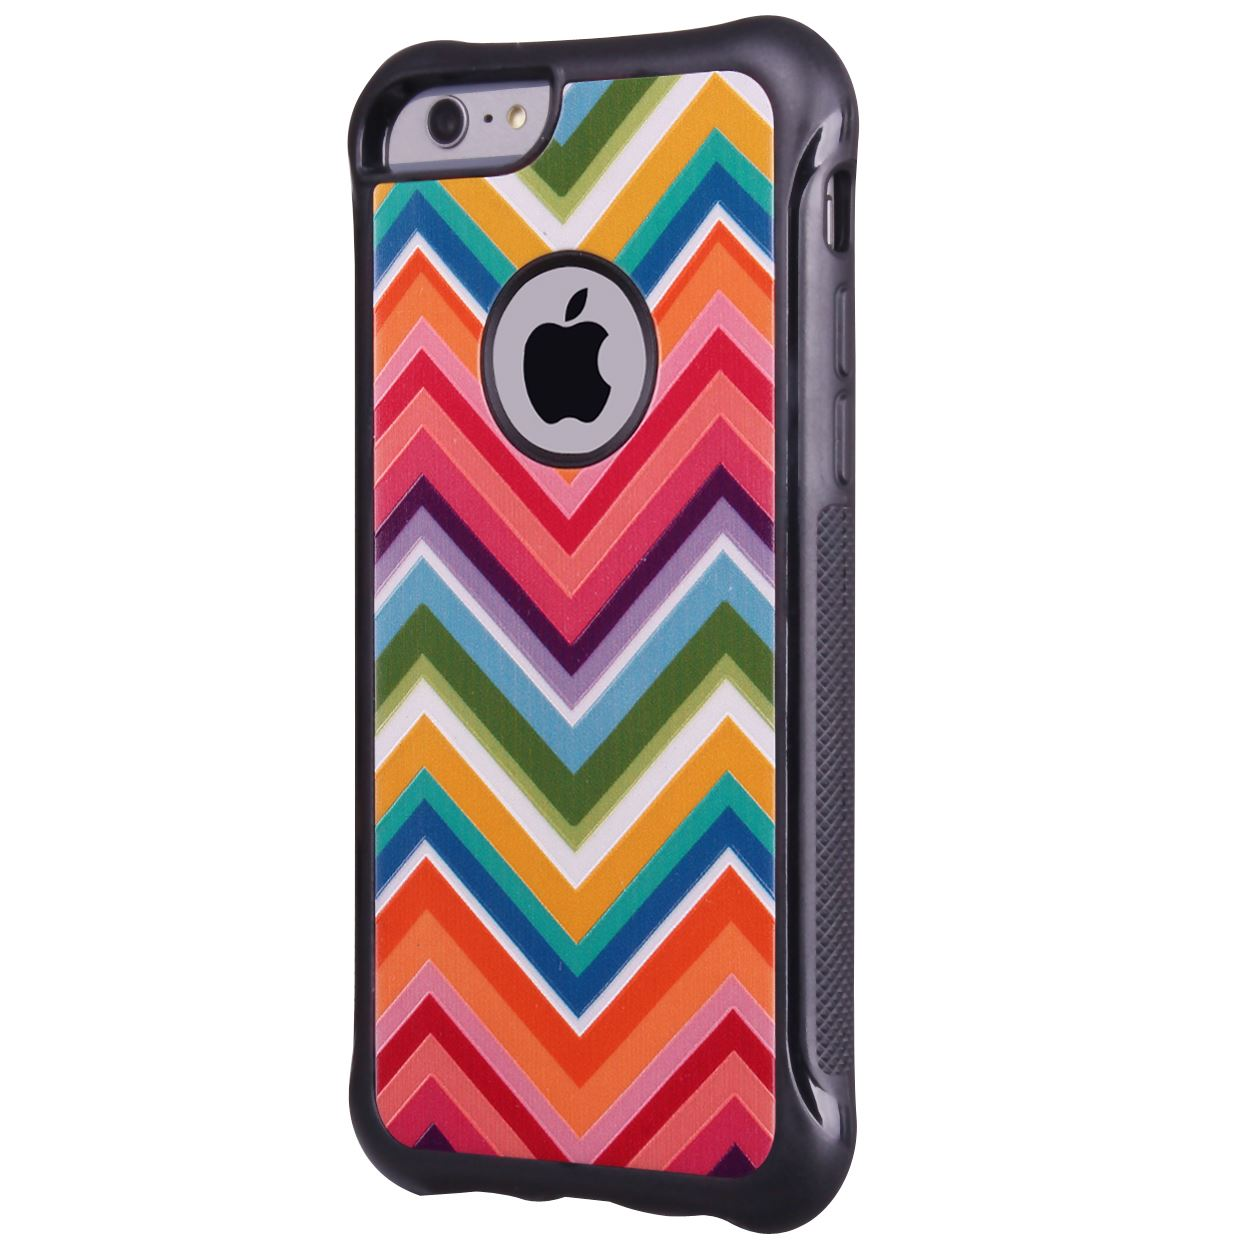 iPhone 6 Case Protective Printed Chevron/Anchor/Zebra/Camo/Flowers/Leopard Cover